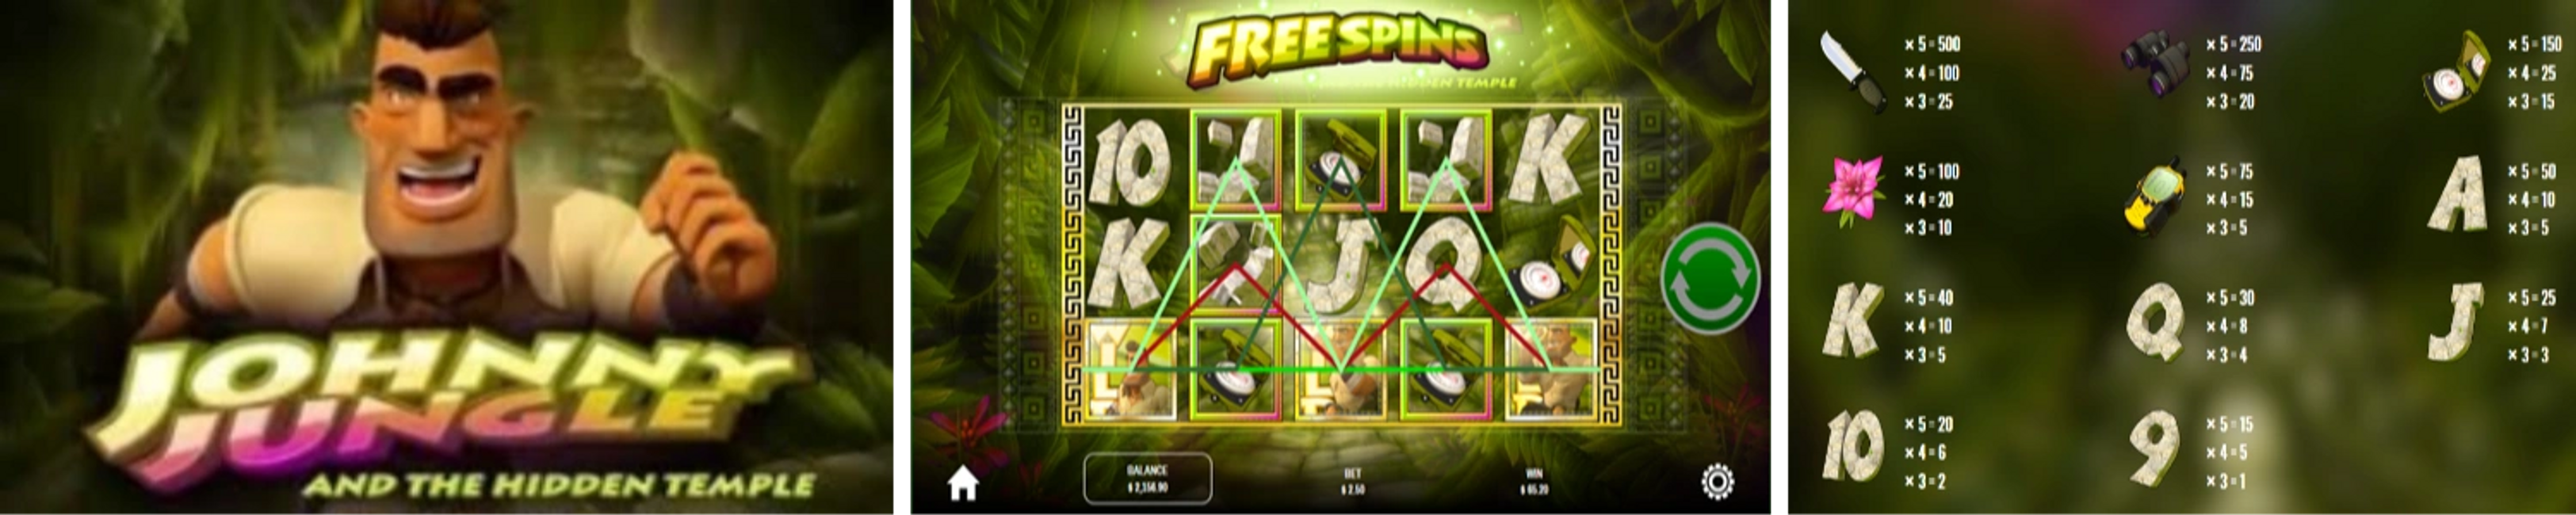 Johnny Jungle Online Video Slot Review